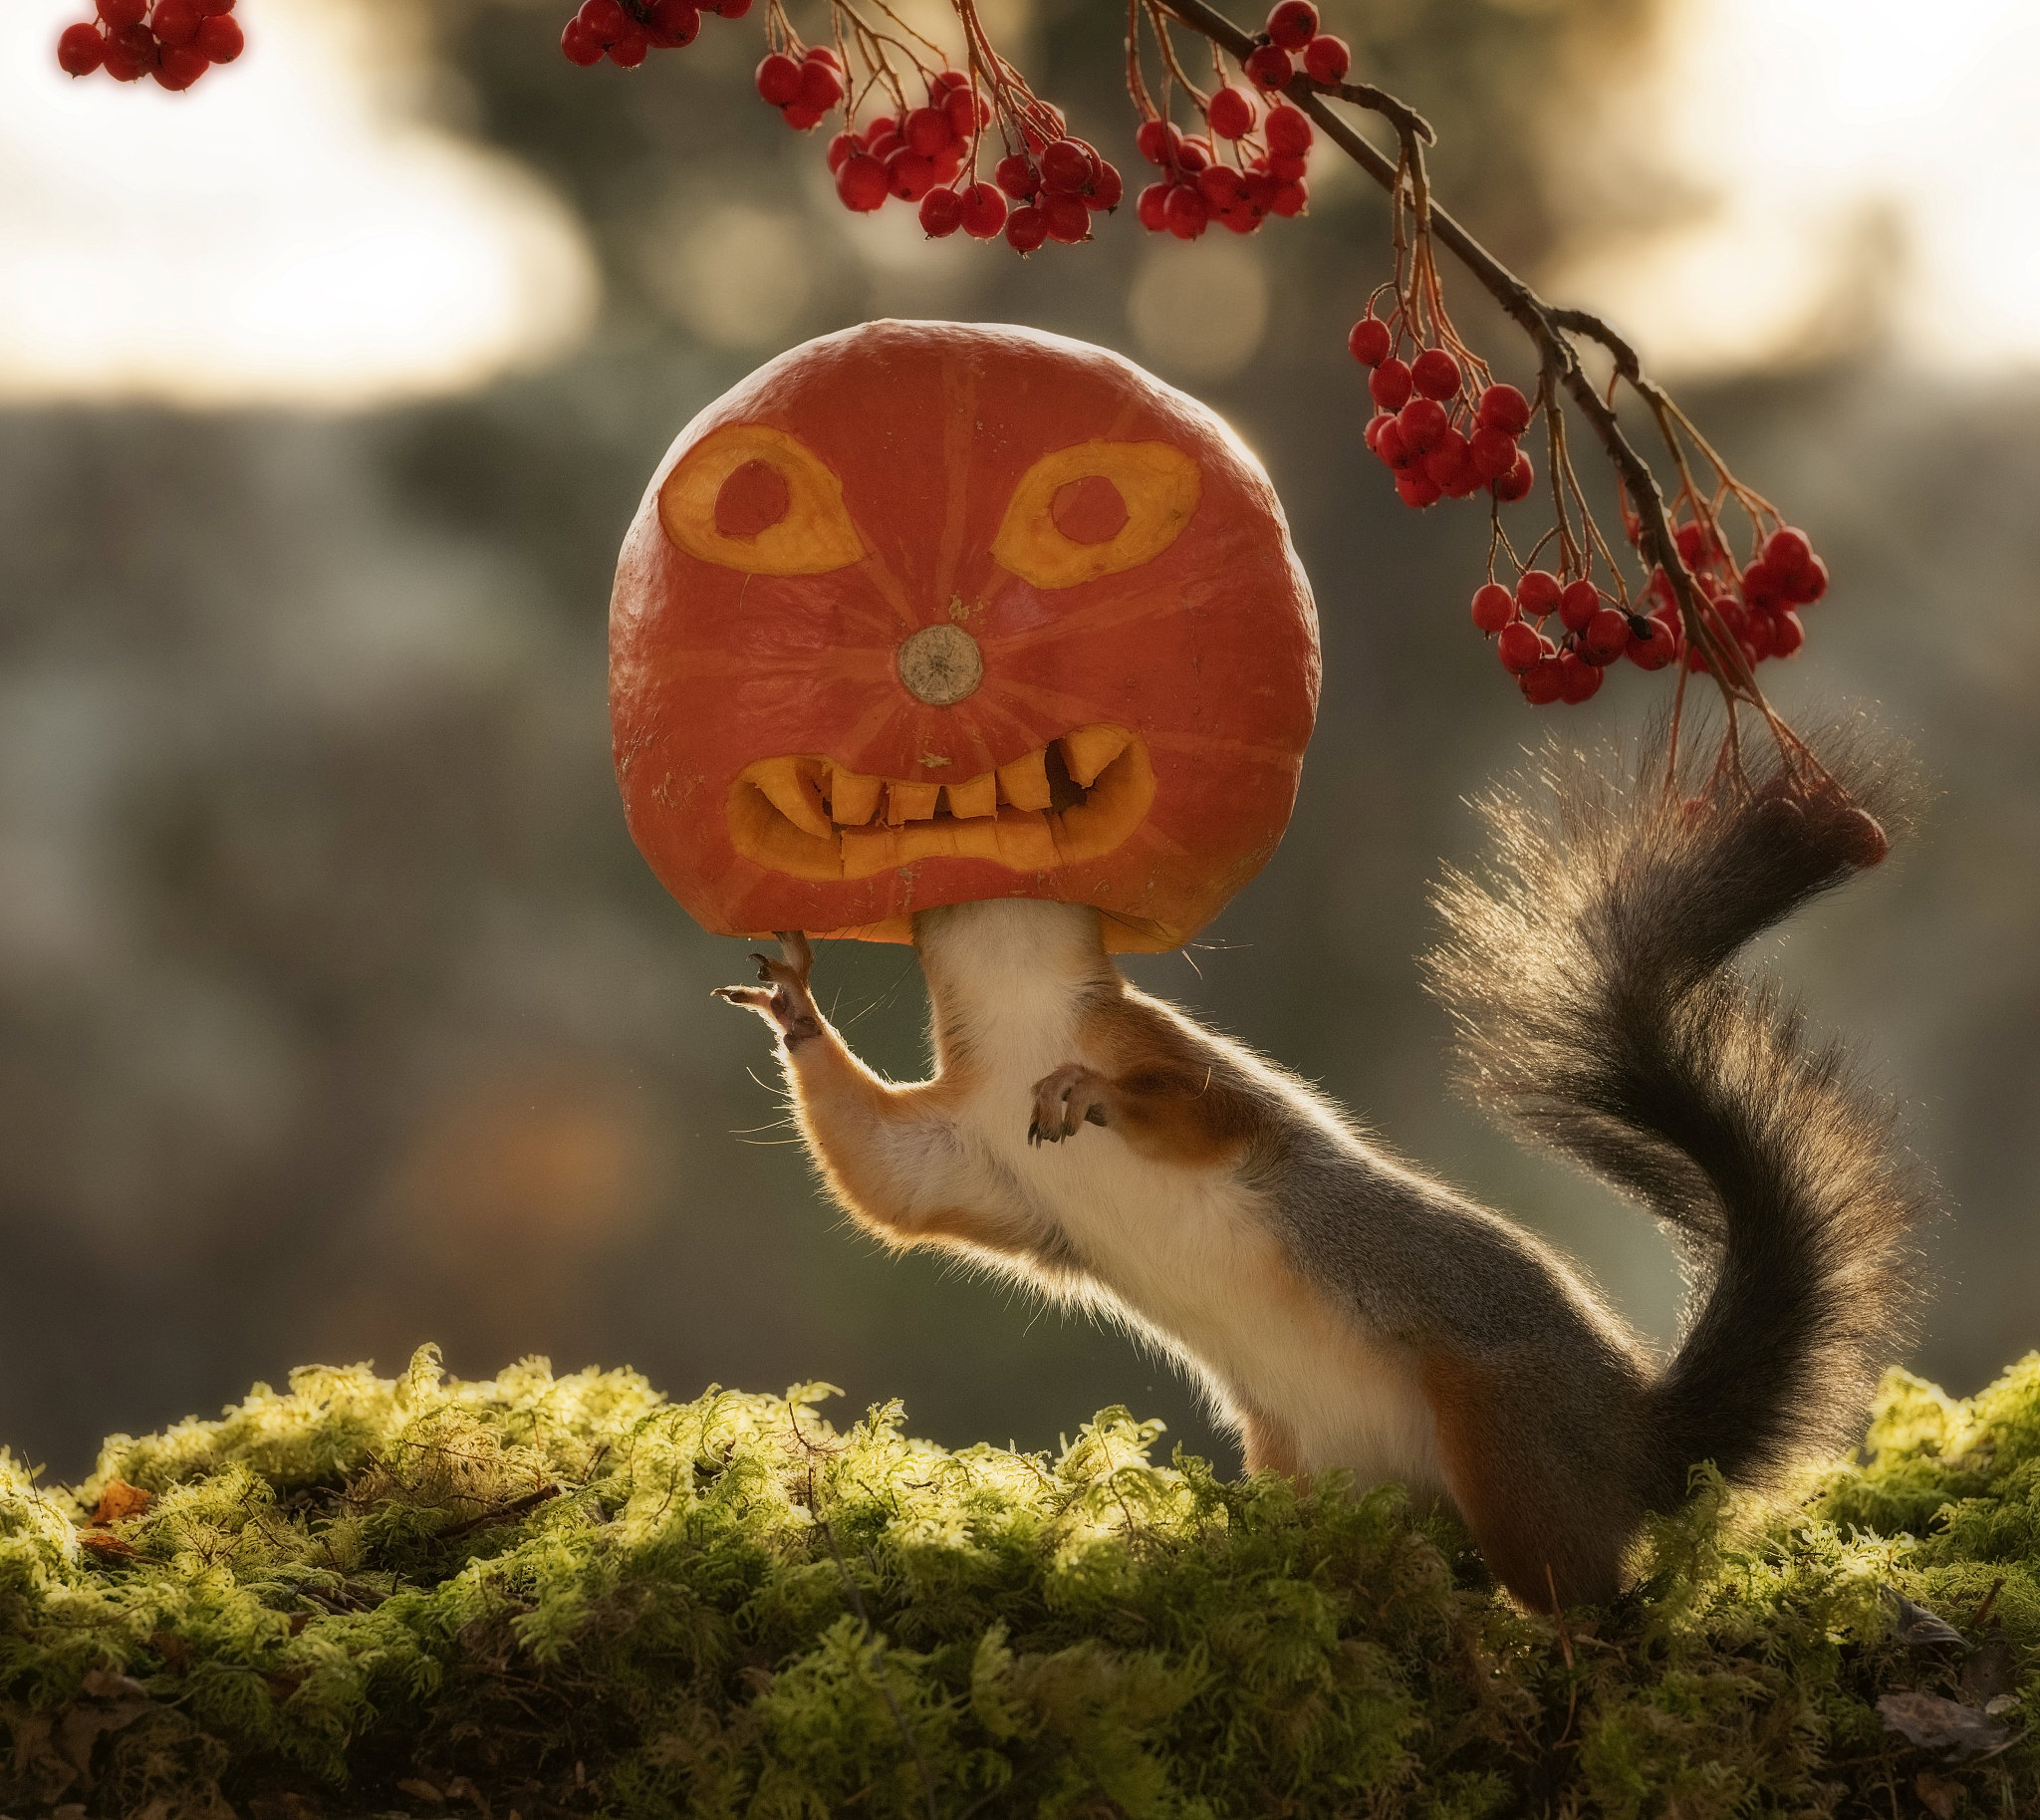 Squirrels play with a pumpkin just in time for Halloween